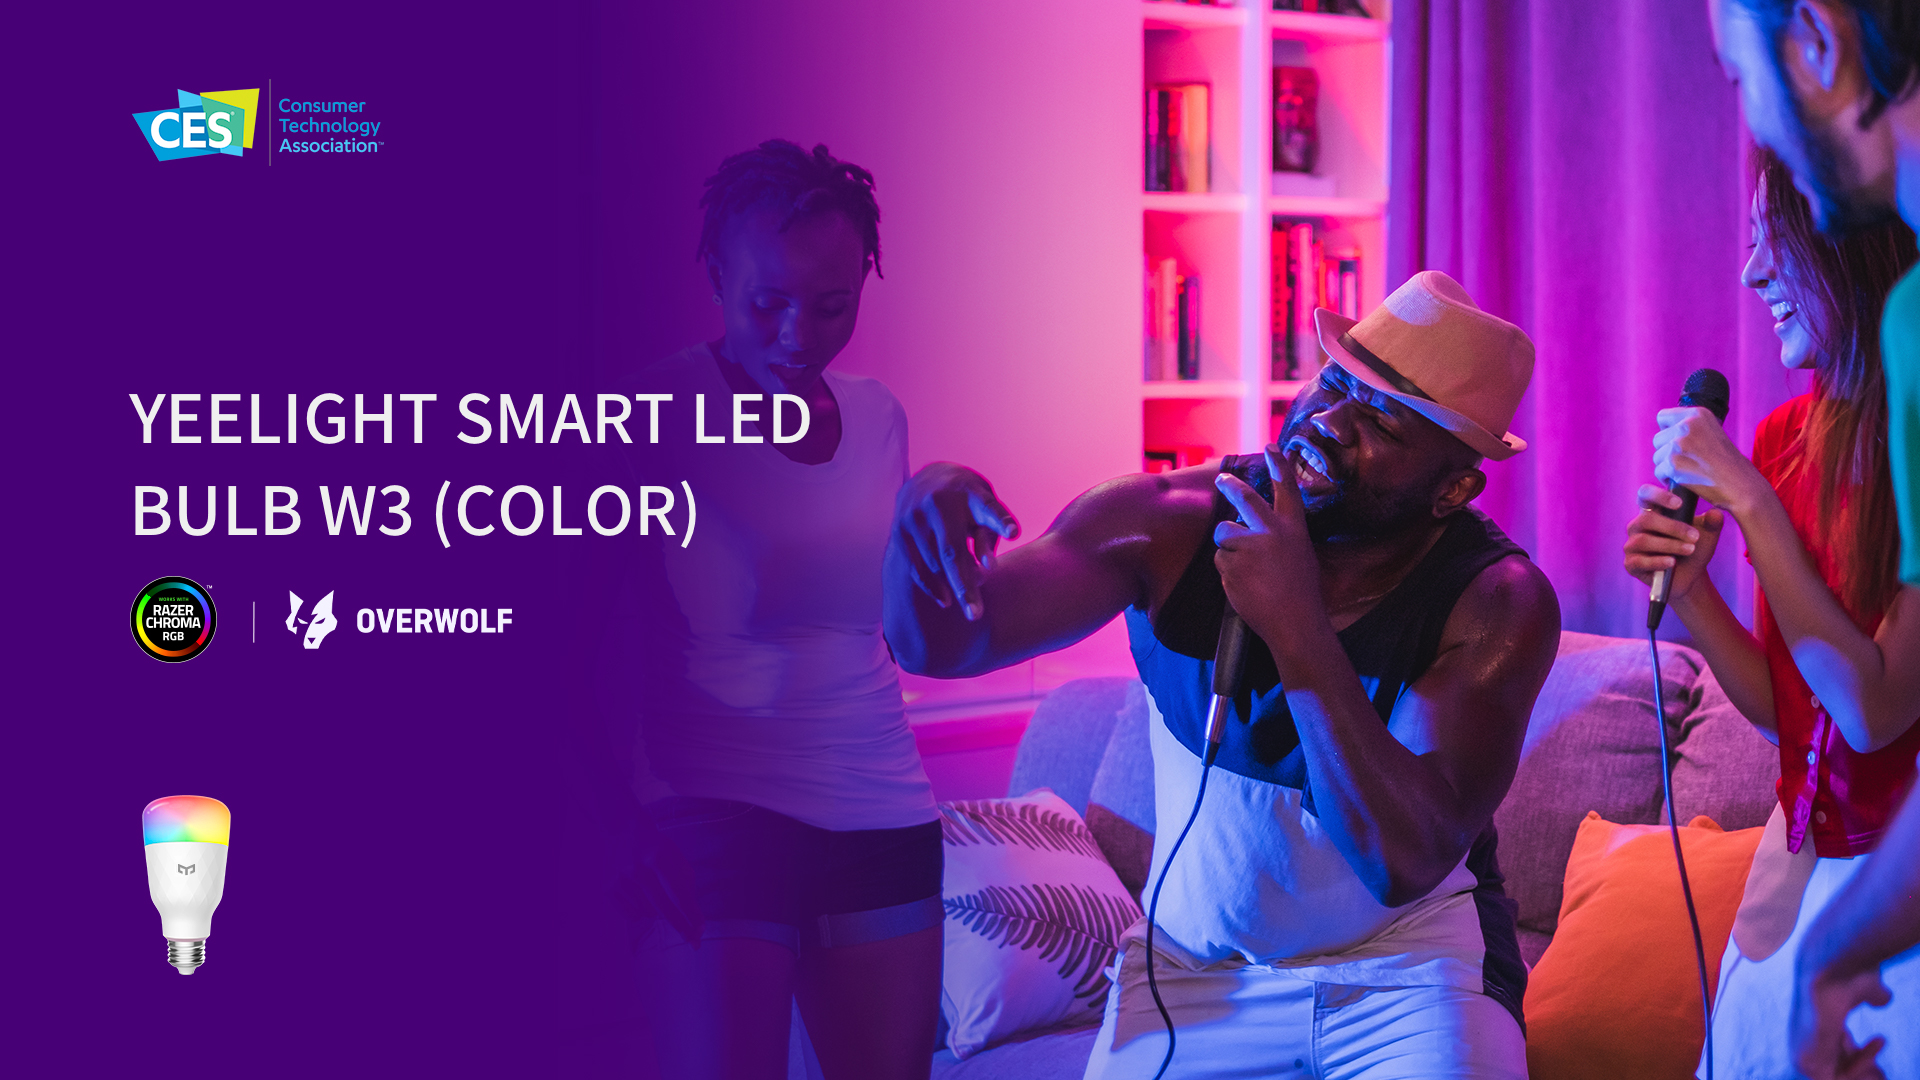 Yeelight Smart LED Bulb W3 Color